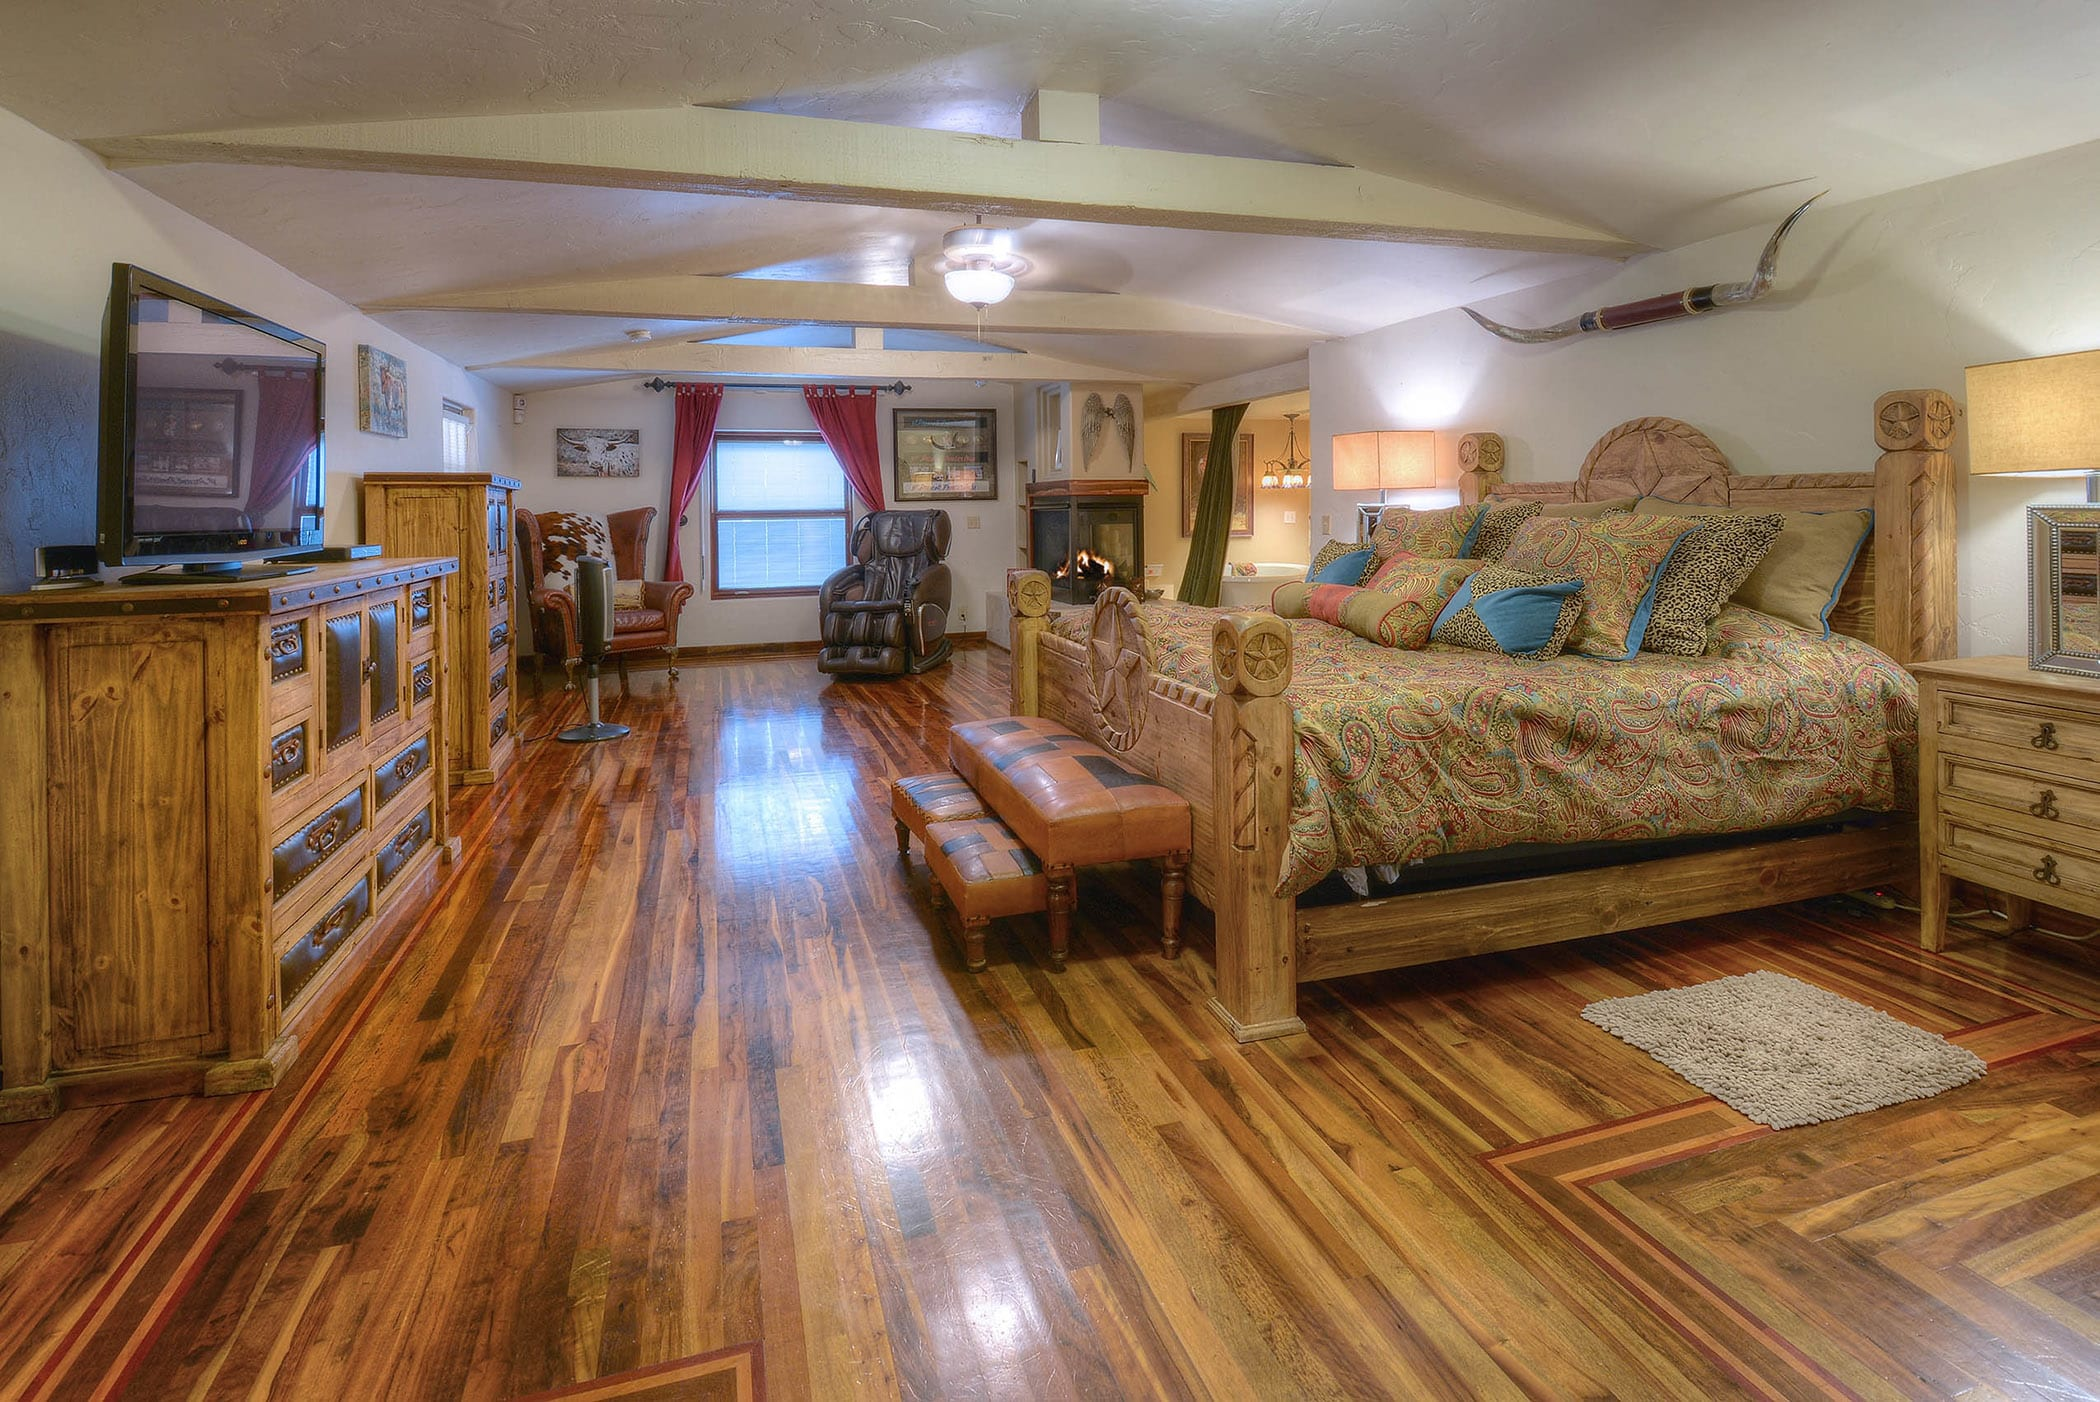 There are 5 bedrooms in the home, including the spacious master bedroom.